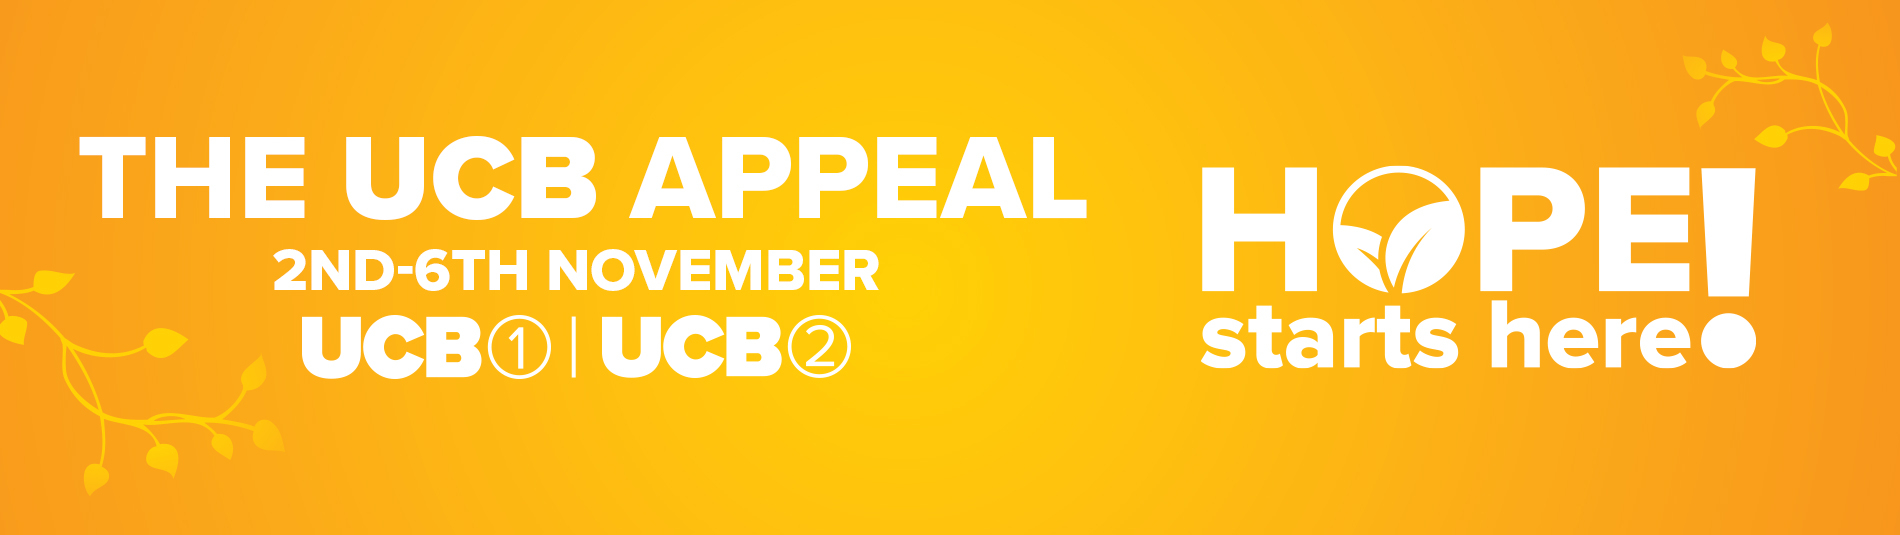 The UCB Appeal 2nd - 6th November - Hope Starts Here!